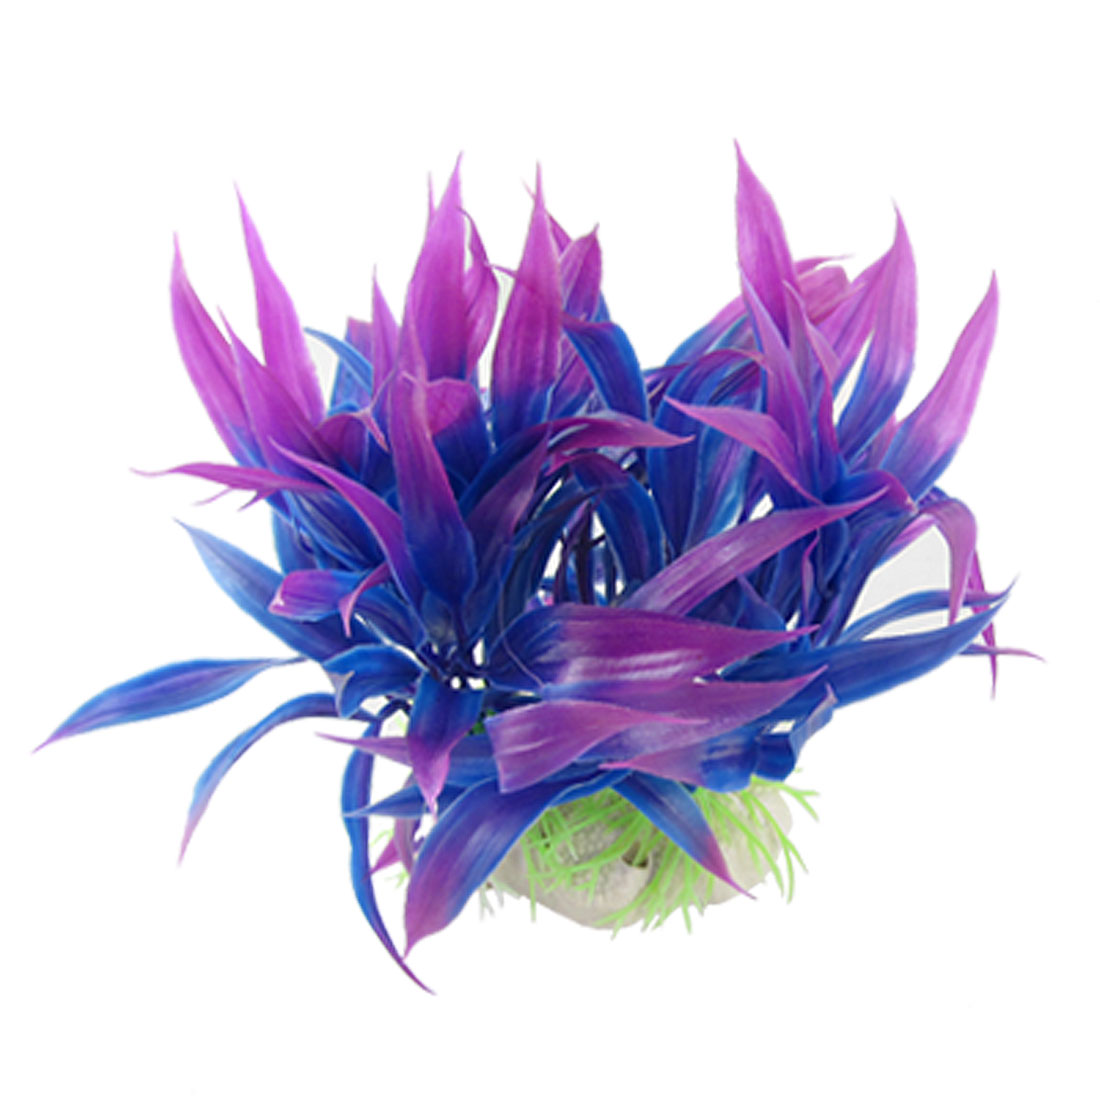 Aquarium Landscaping Artificial Ceramic Base Purple Blue Plastic Plants